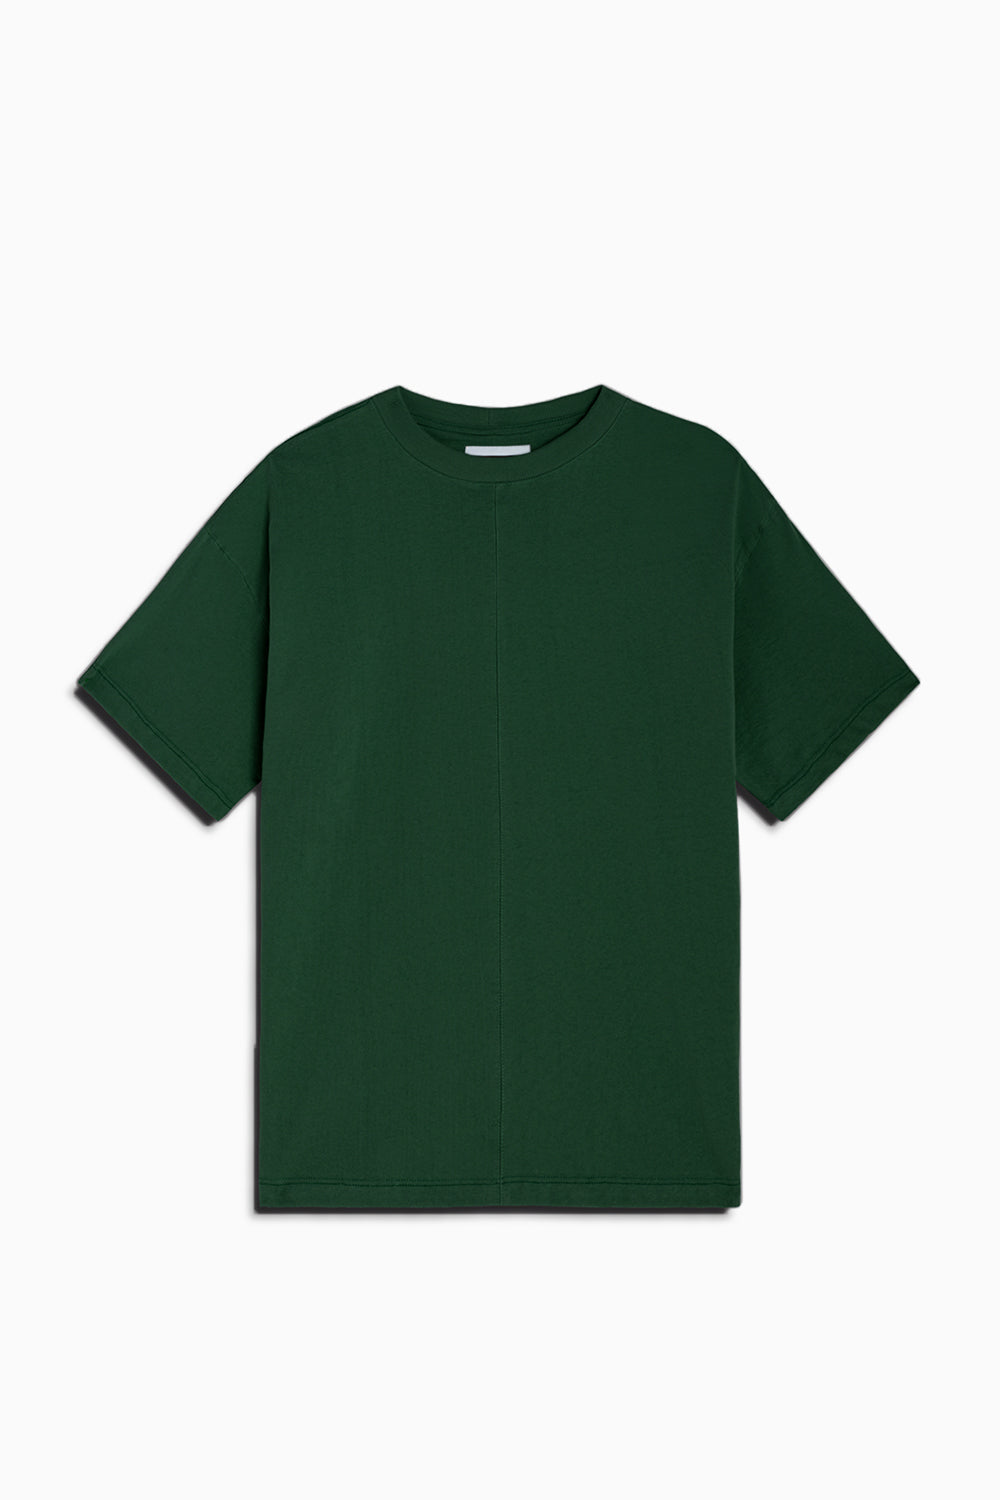 standard tee / hunter green